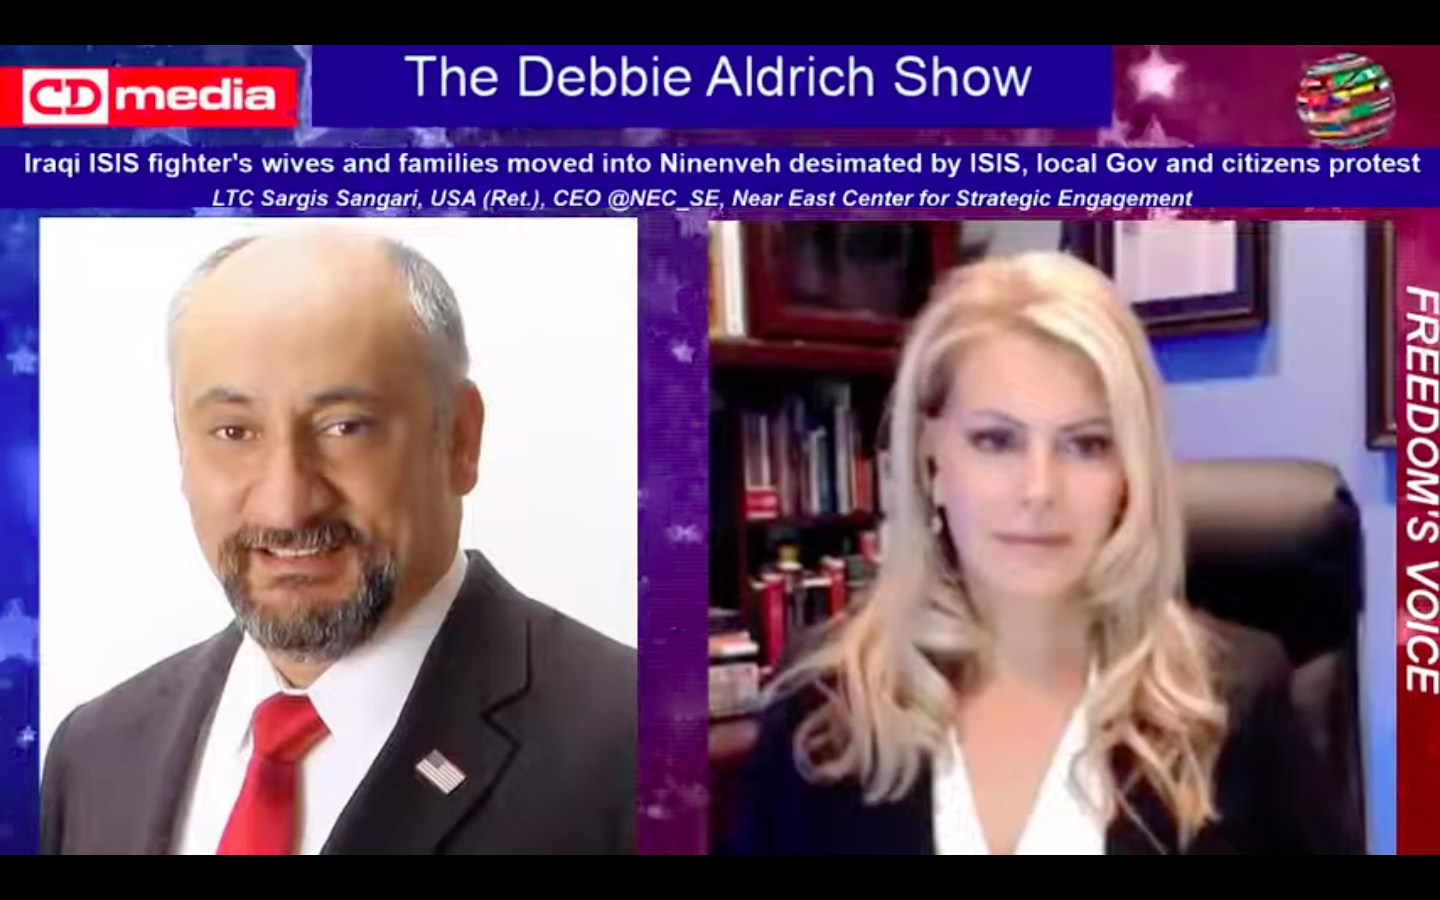 Debbie Aldrich Discusses The Plight Of The Assyrian People After Relocation Of ISIS Families...With LTC Sargis Sangari (Ret) - Tsarizm